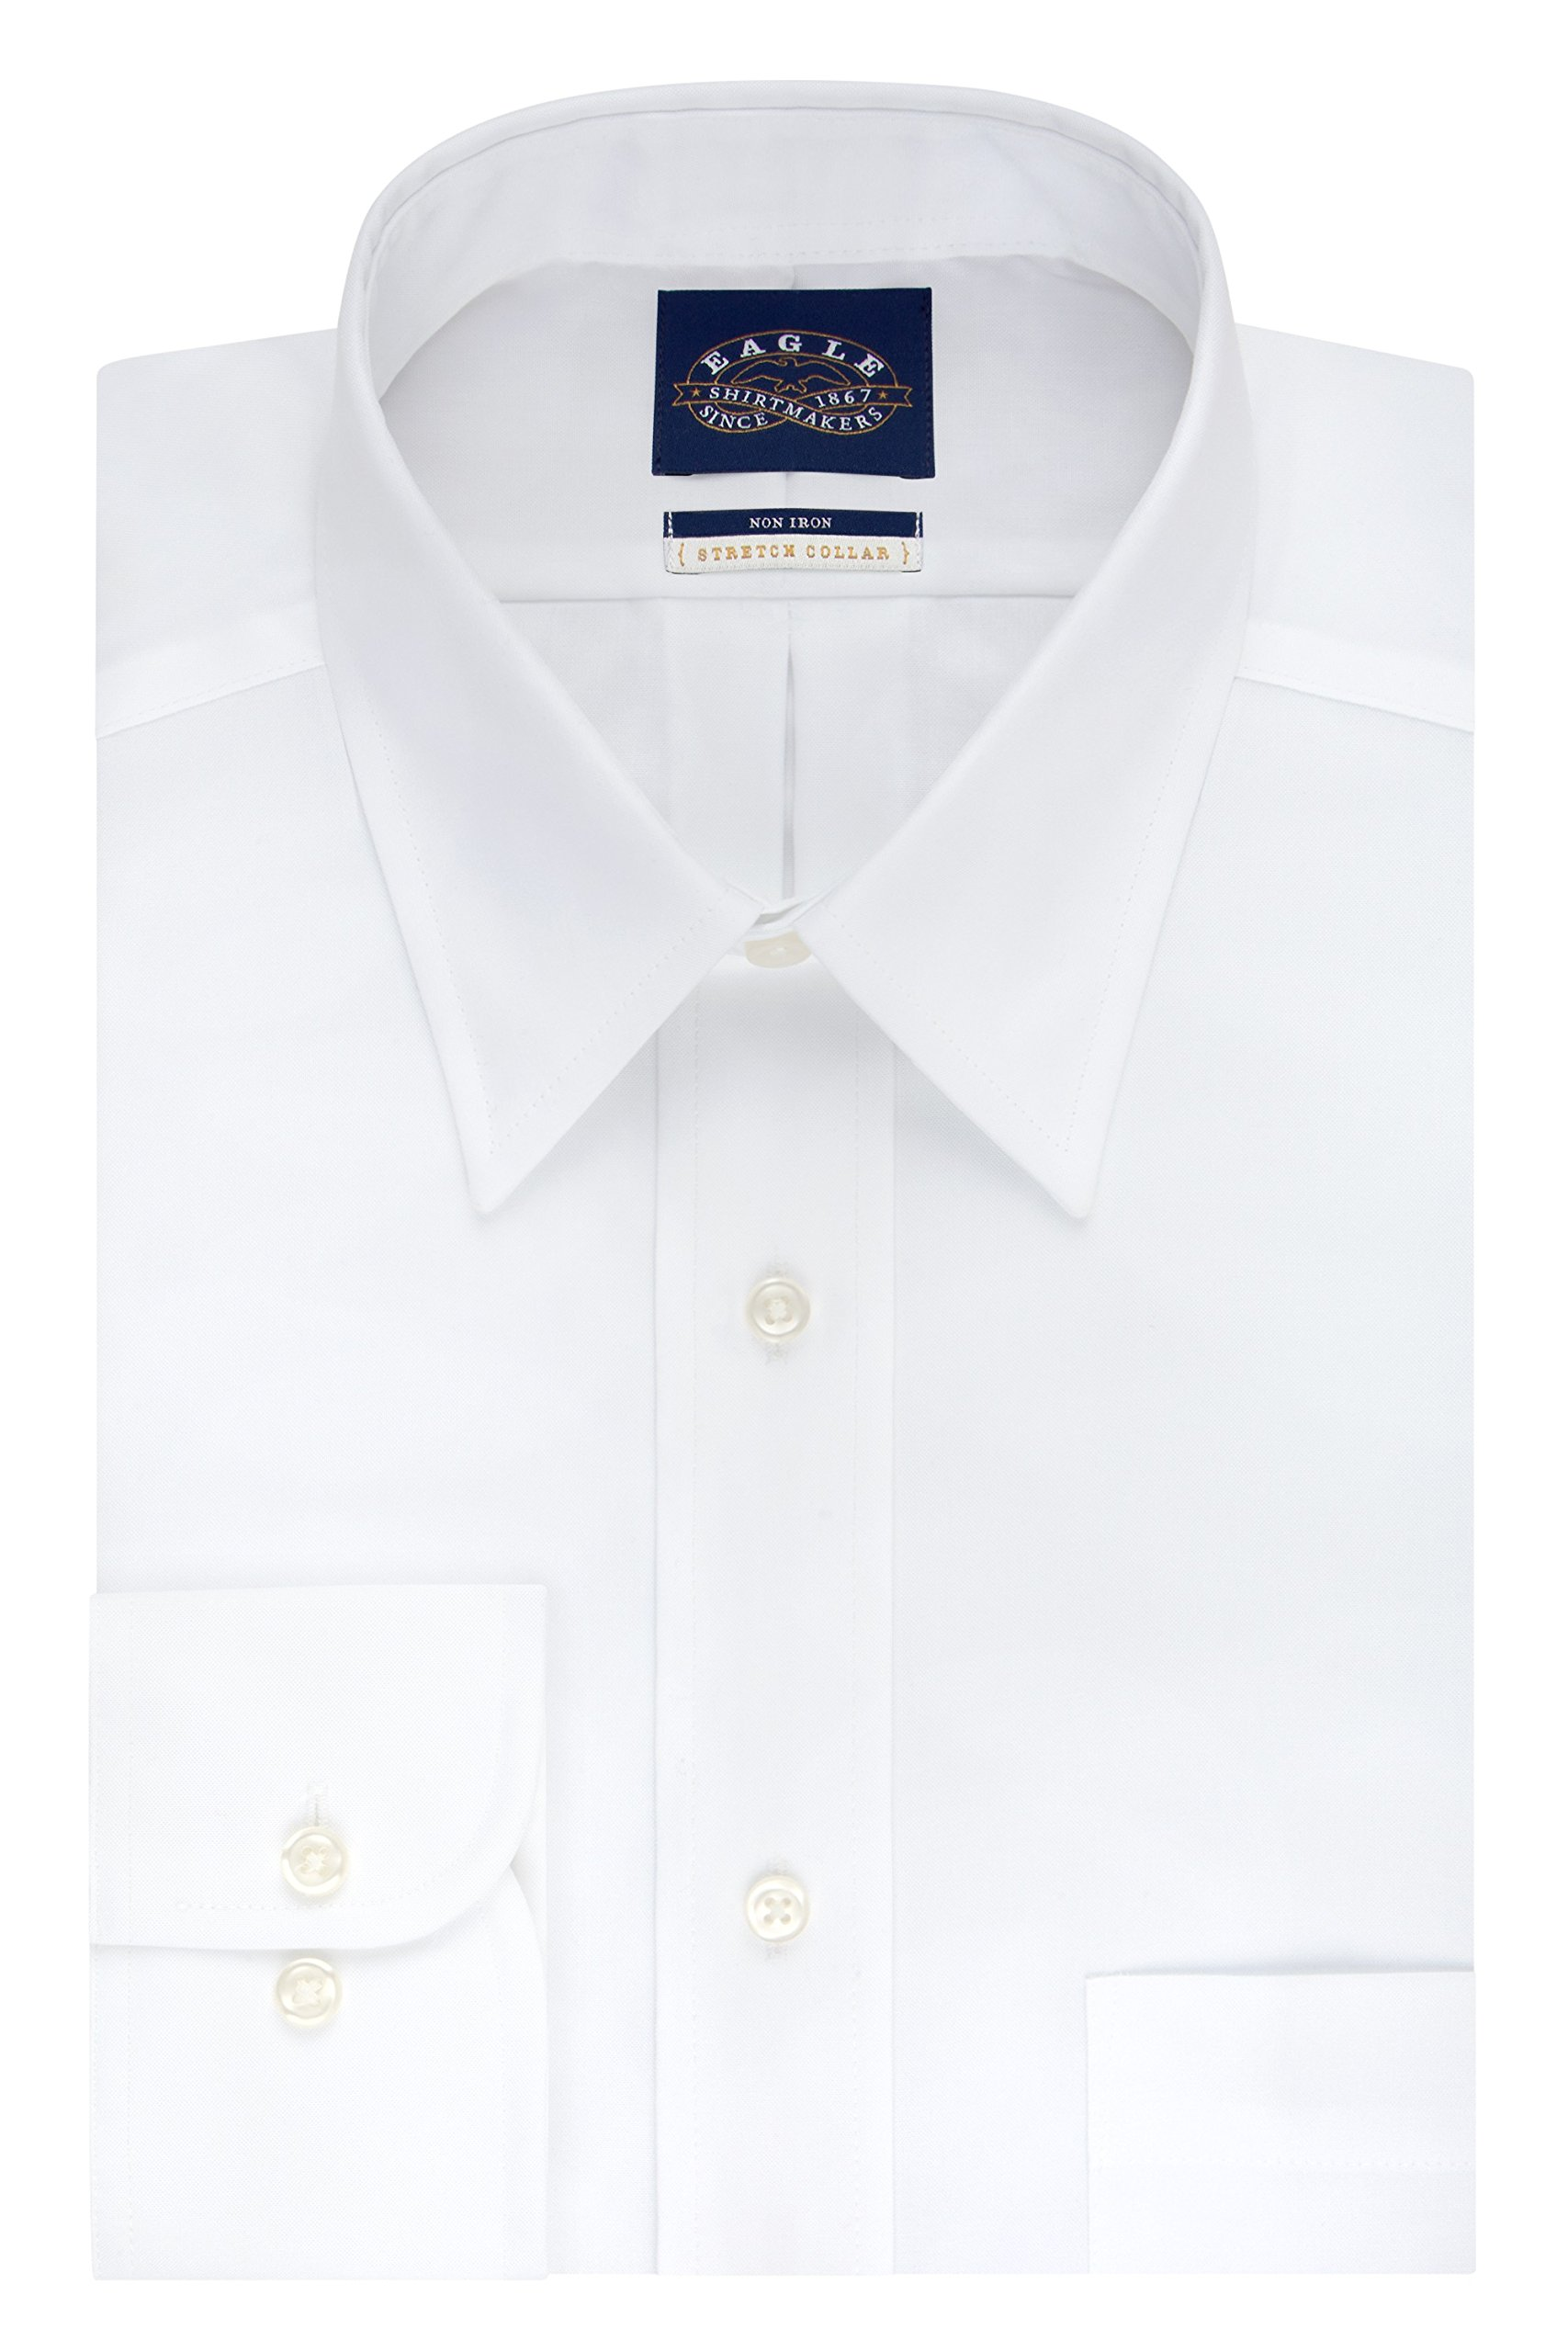 Eagle Men's Tall Size Non Iron Stretch Collar Solid Point Collar Dress Shirt, White, 22'' Neck 37''-38'' Sleeve